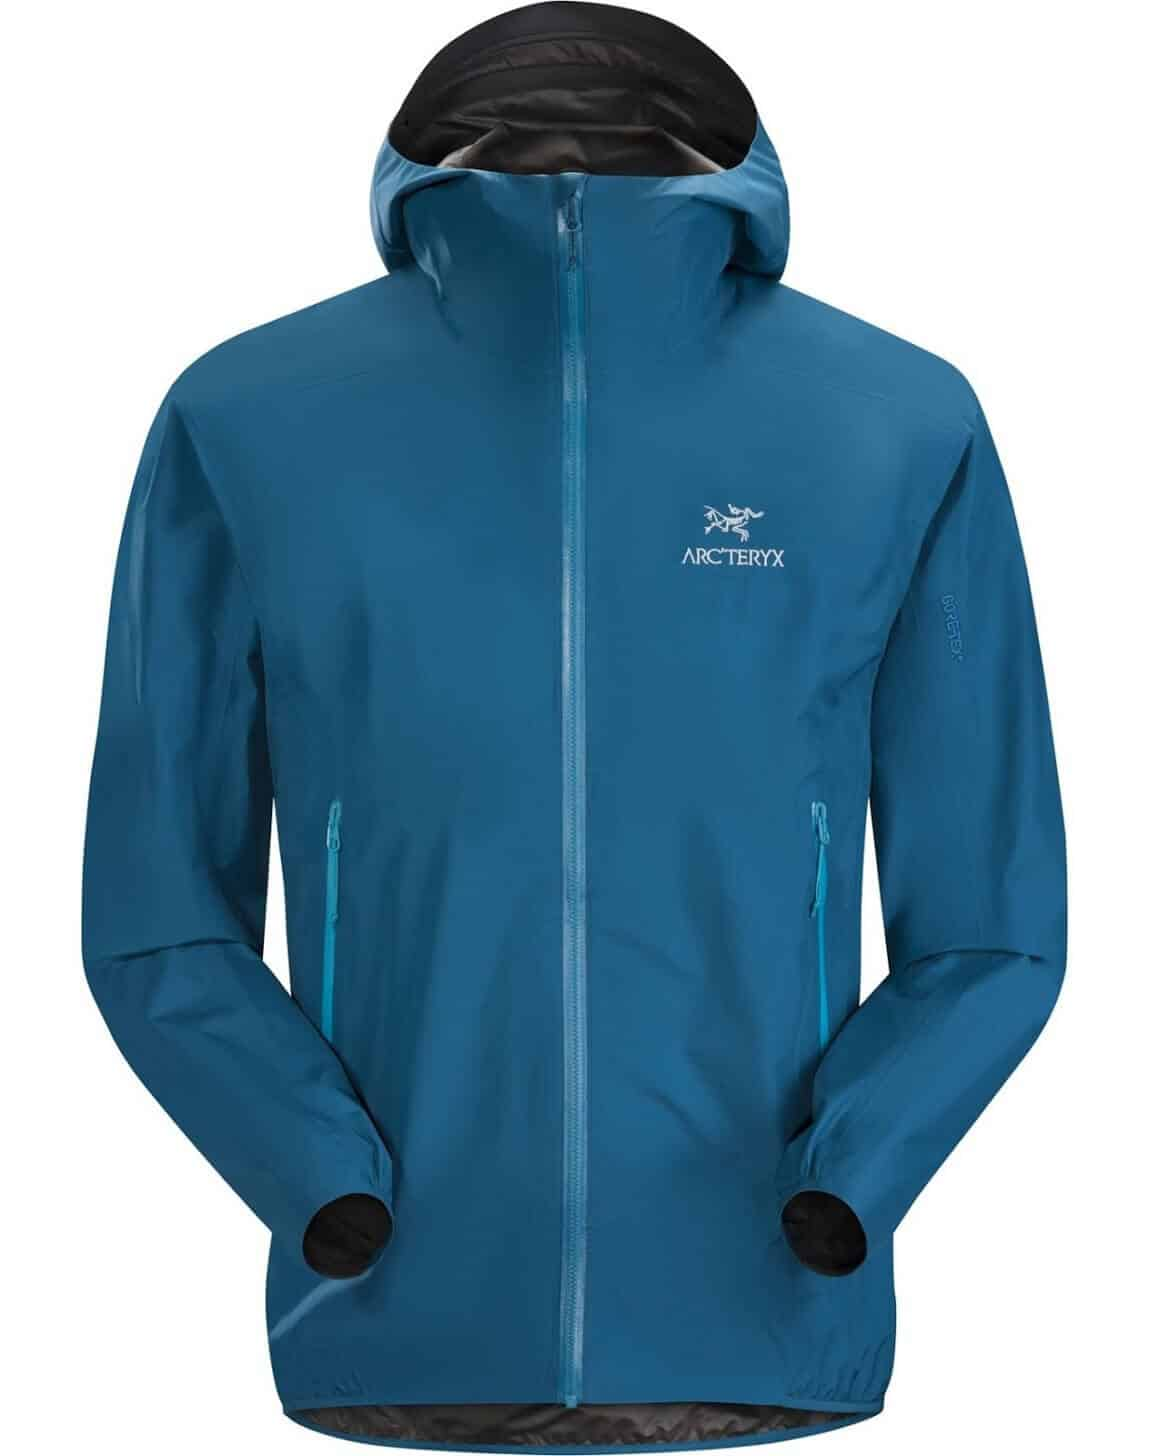 Arcteryx Zeta FL Jacket review